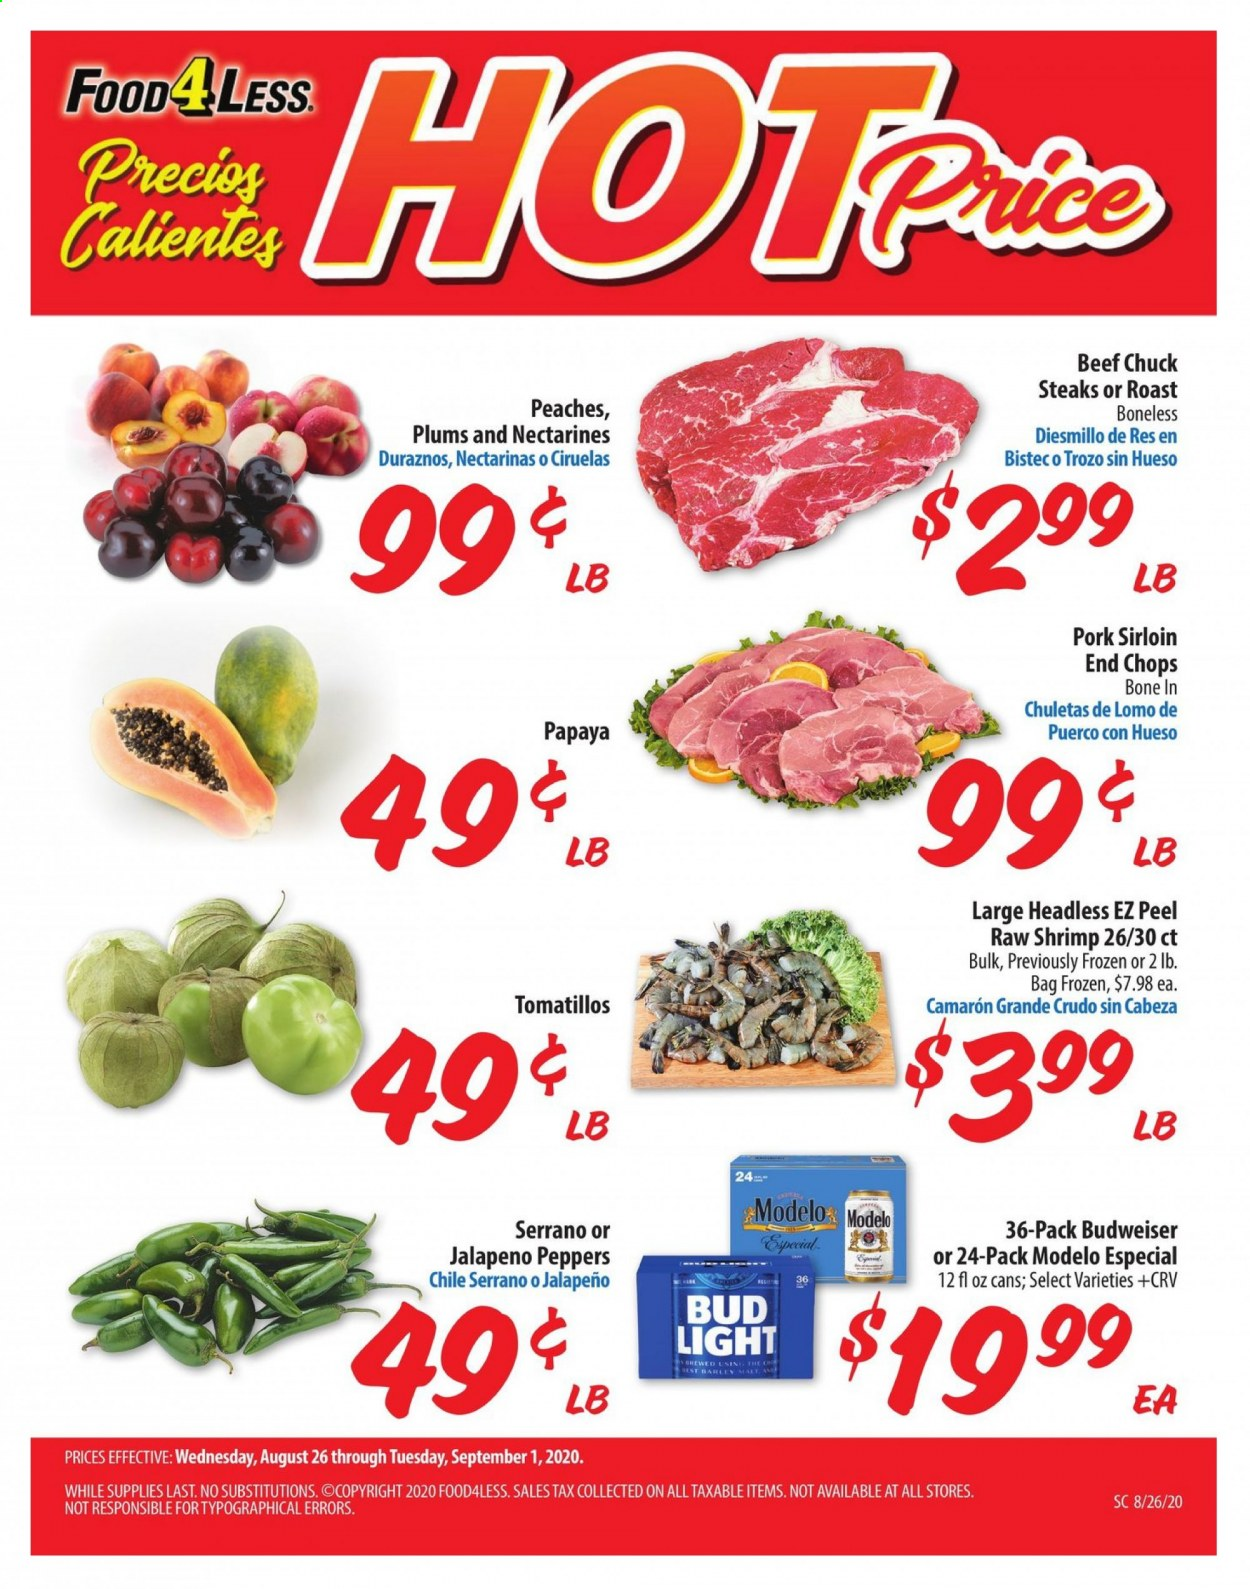 Food 4 Less Flyer - 08.26.2020 - 09.01.2020 - Sales products - Budweiser, Bud Light, peppers, nectarines, plums, peache, shrimps, barley, jalapeño, beef meat, pork meat, Frozen. Page 1.